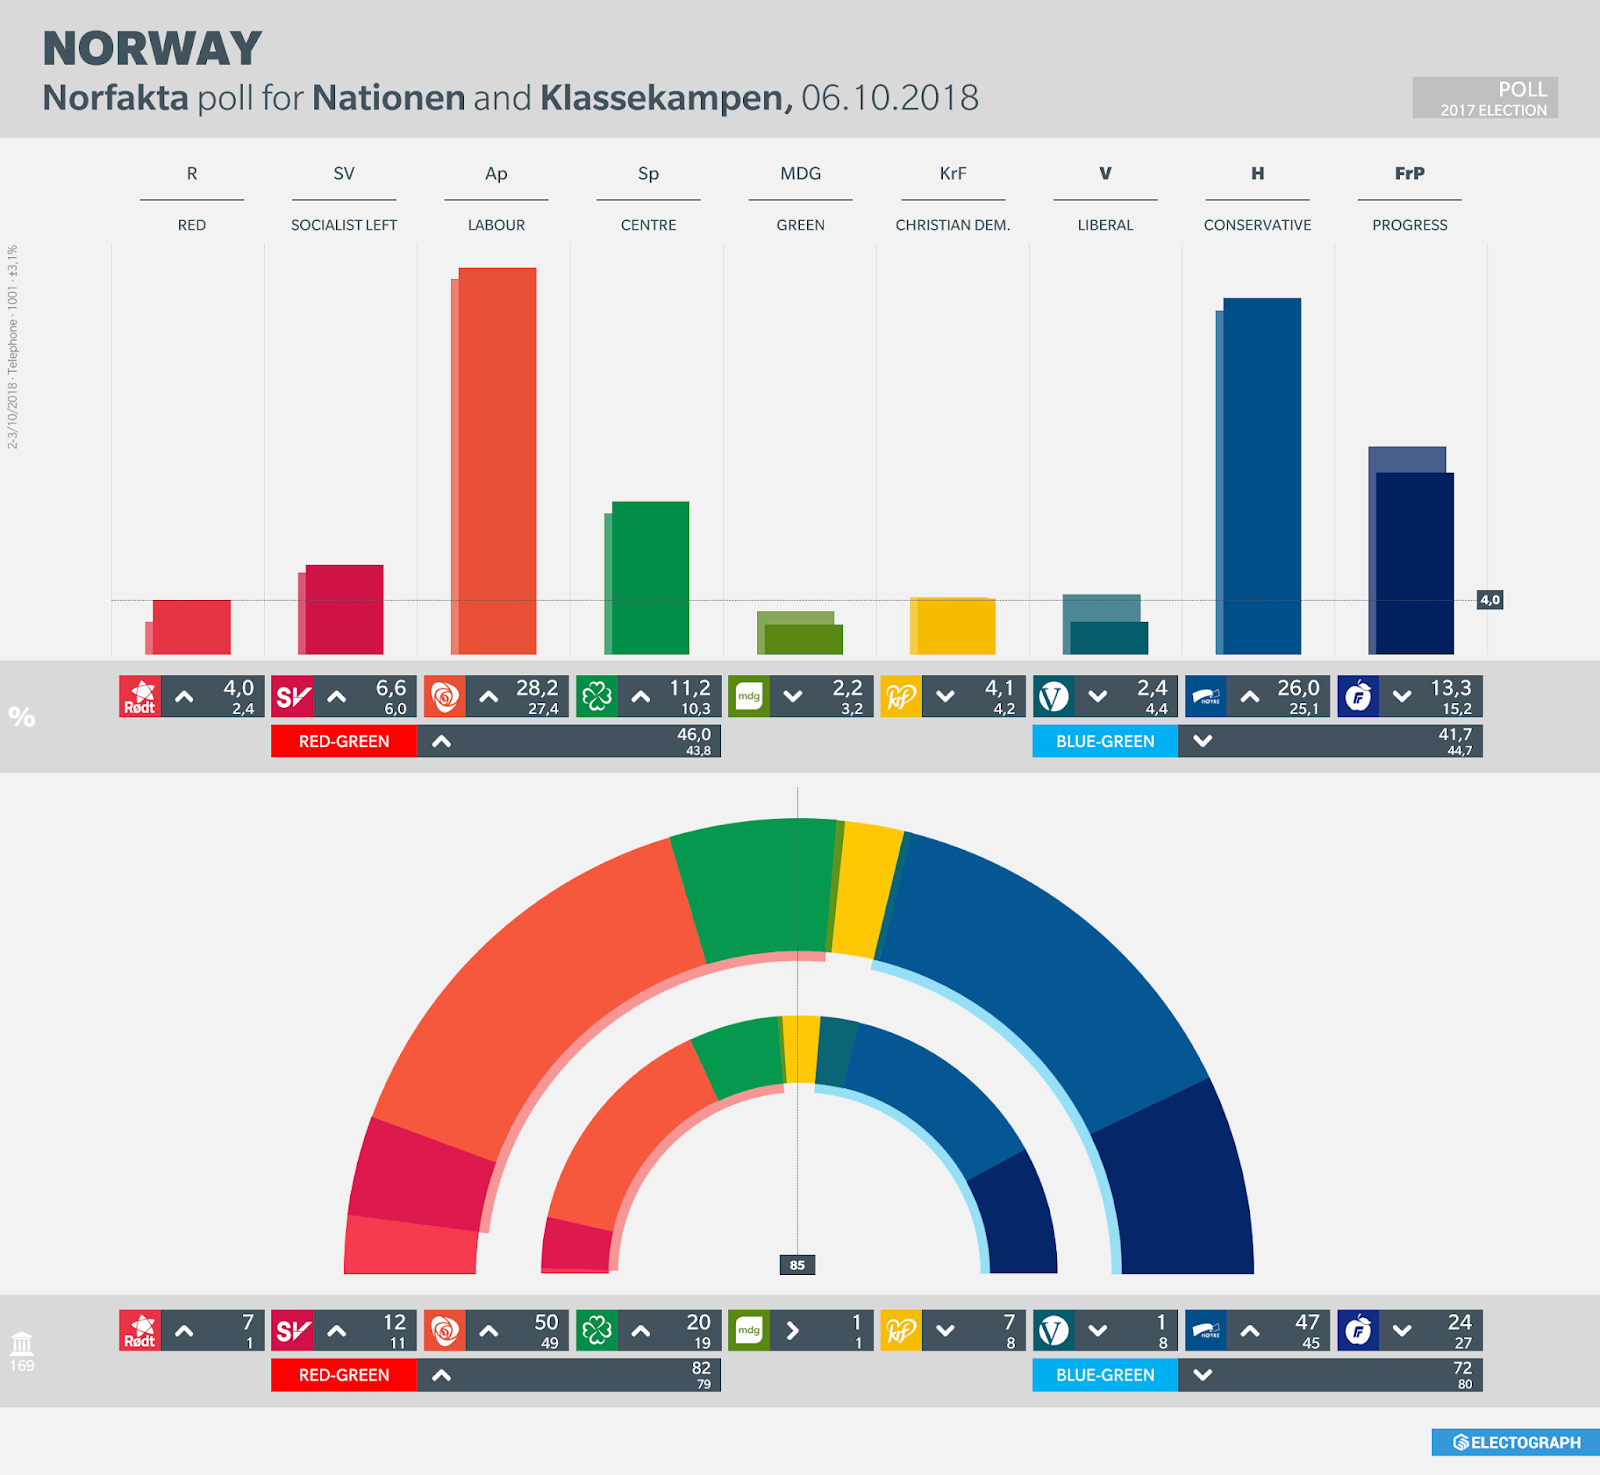 NORWAY: Norfakta poll chart for Nationen and Klassekampen, October 2018